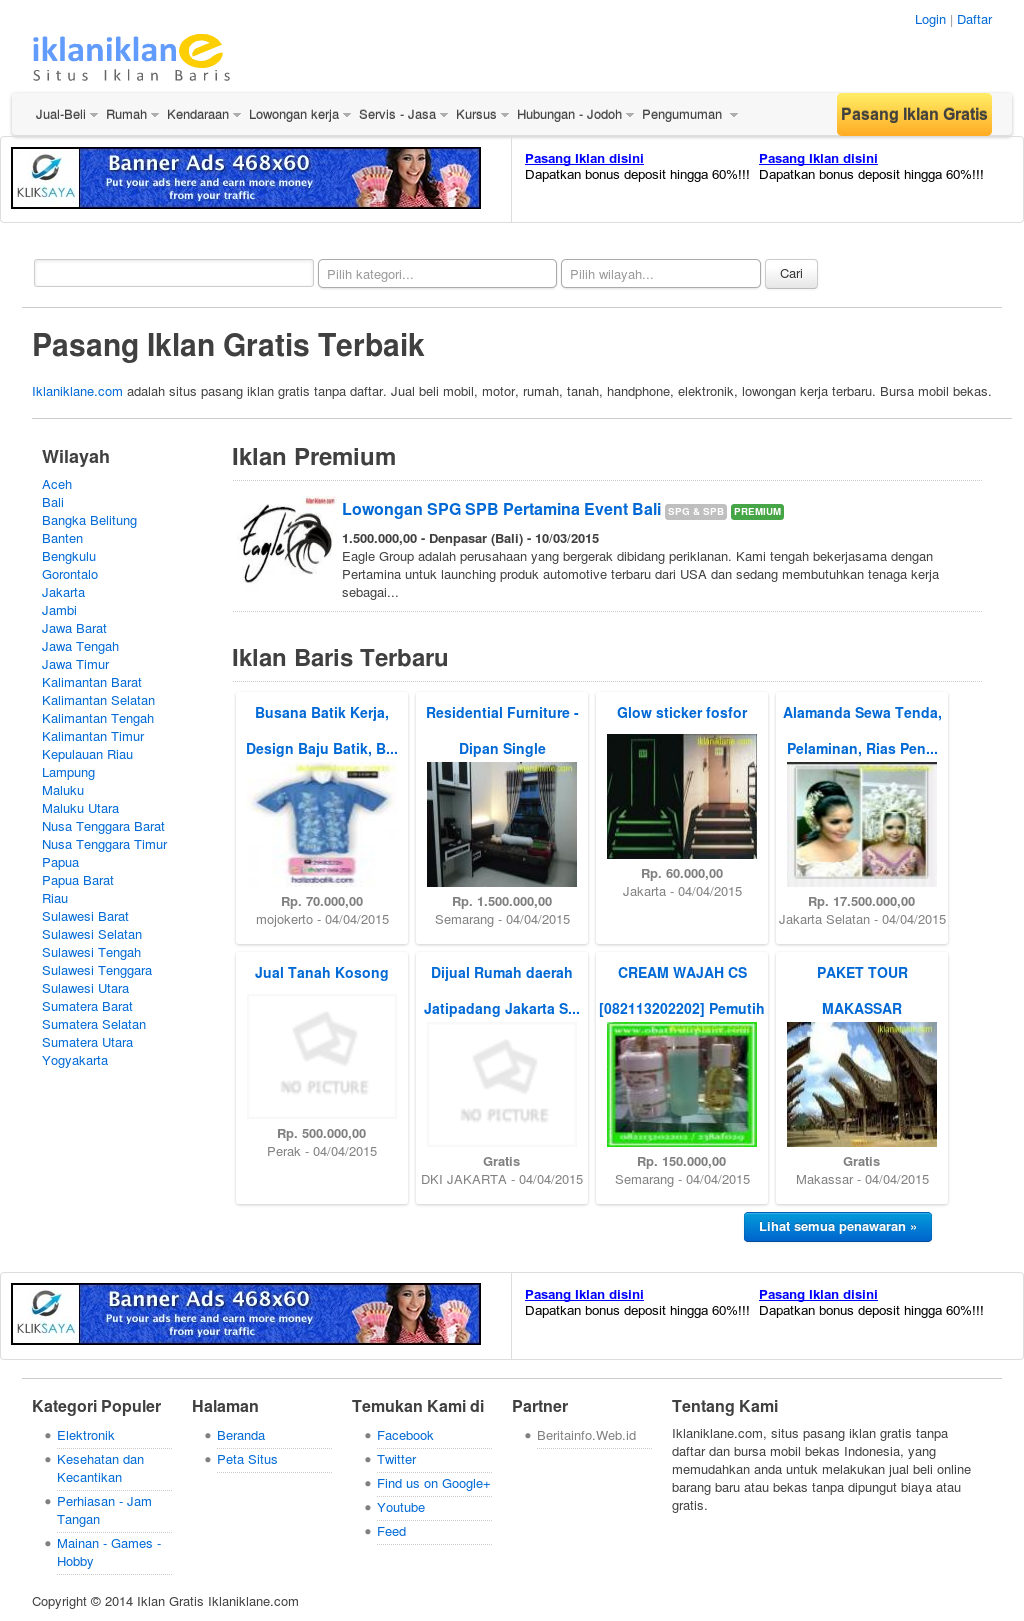 Pasang Iklan Gratis Iklaniklane Competitors Revenue And Employees Owler Company Profile